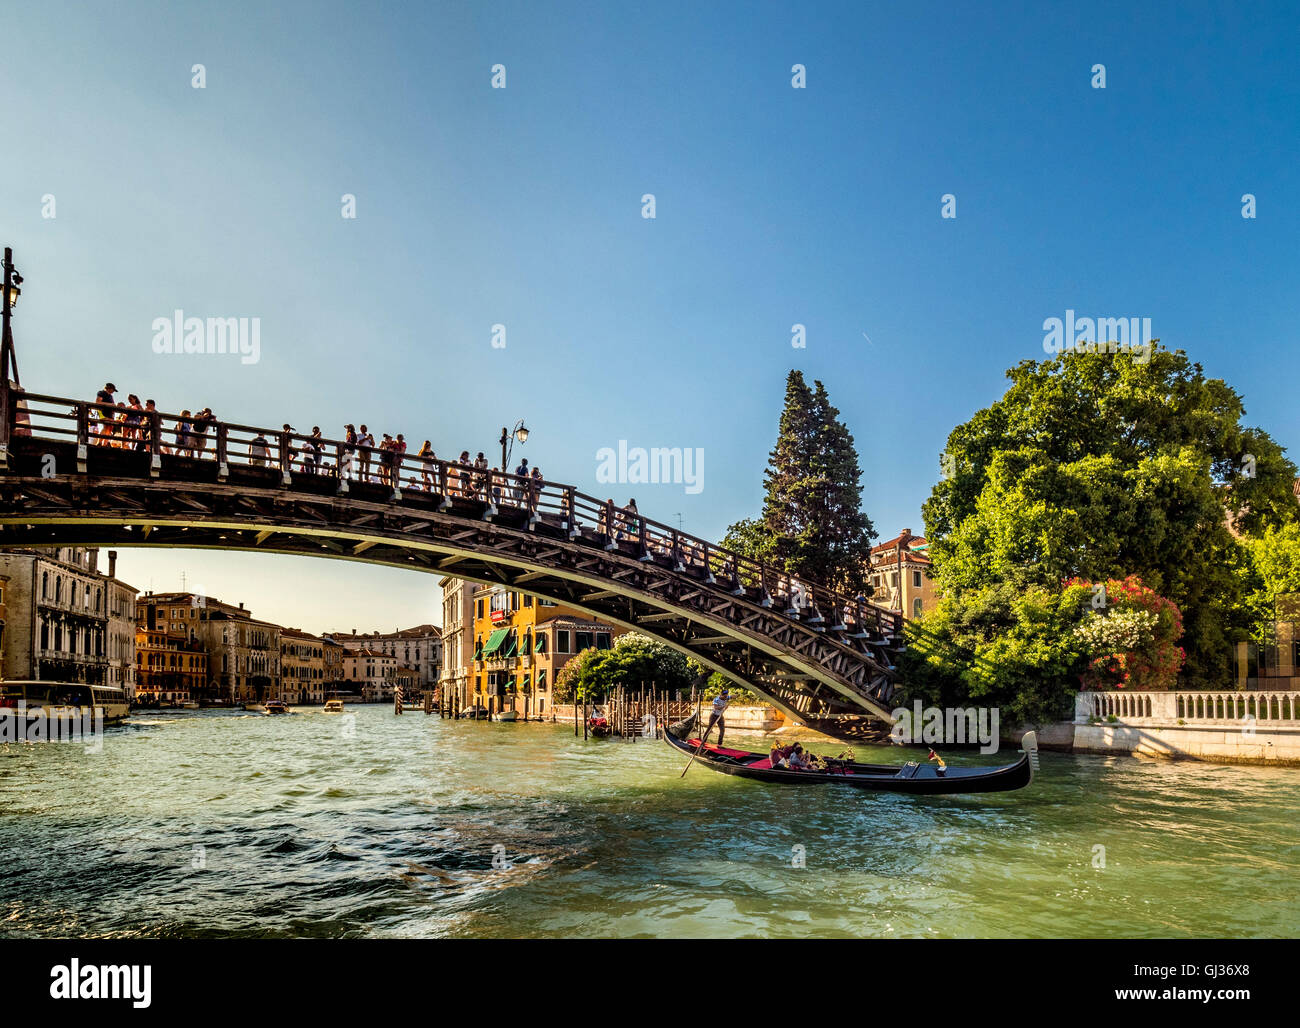 Gondola on the Grand Canal in Venice, Italy, passing underneath the Accademia Bridge. - Stock Image